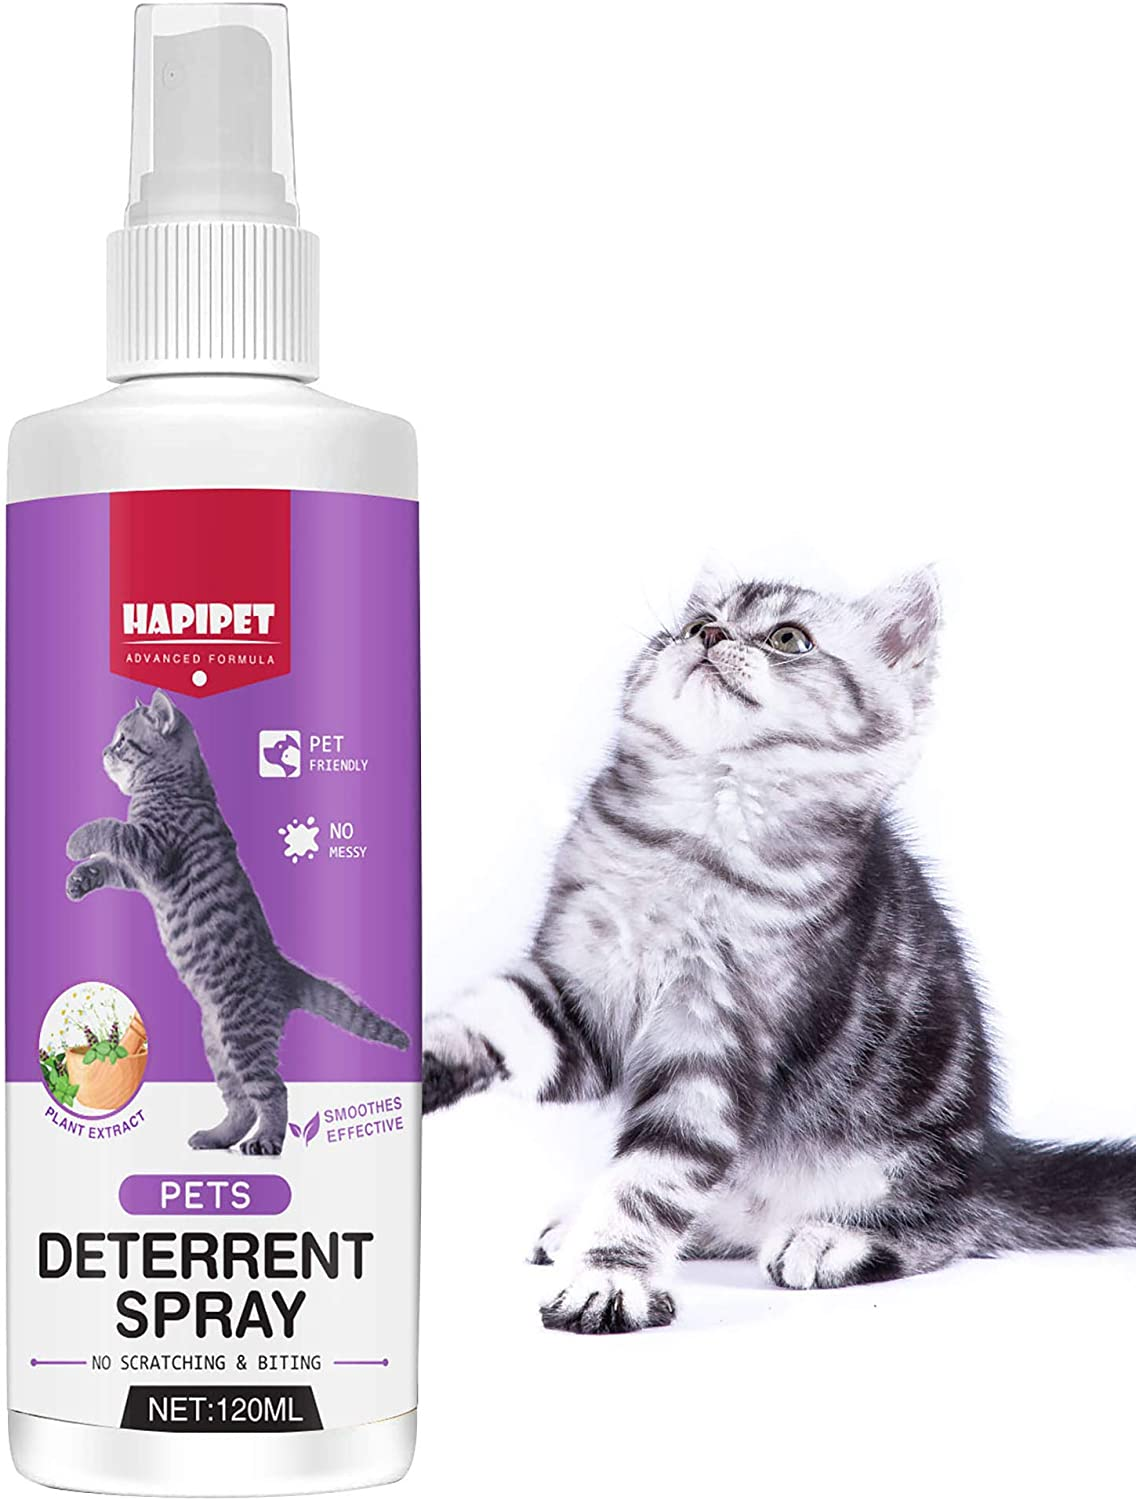 Inscape Data Cat Spray Deterrent, Cat & Kitten Training Aid with Bitter Anti Scratch Furniture Protector - Keep Cats Off